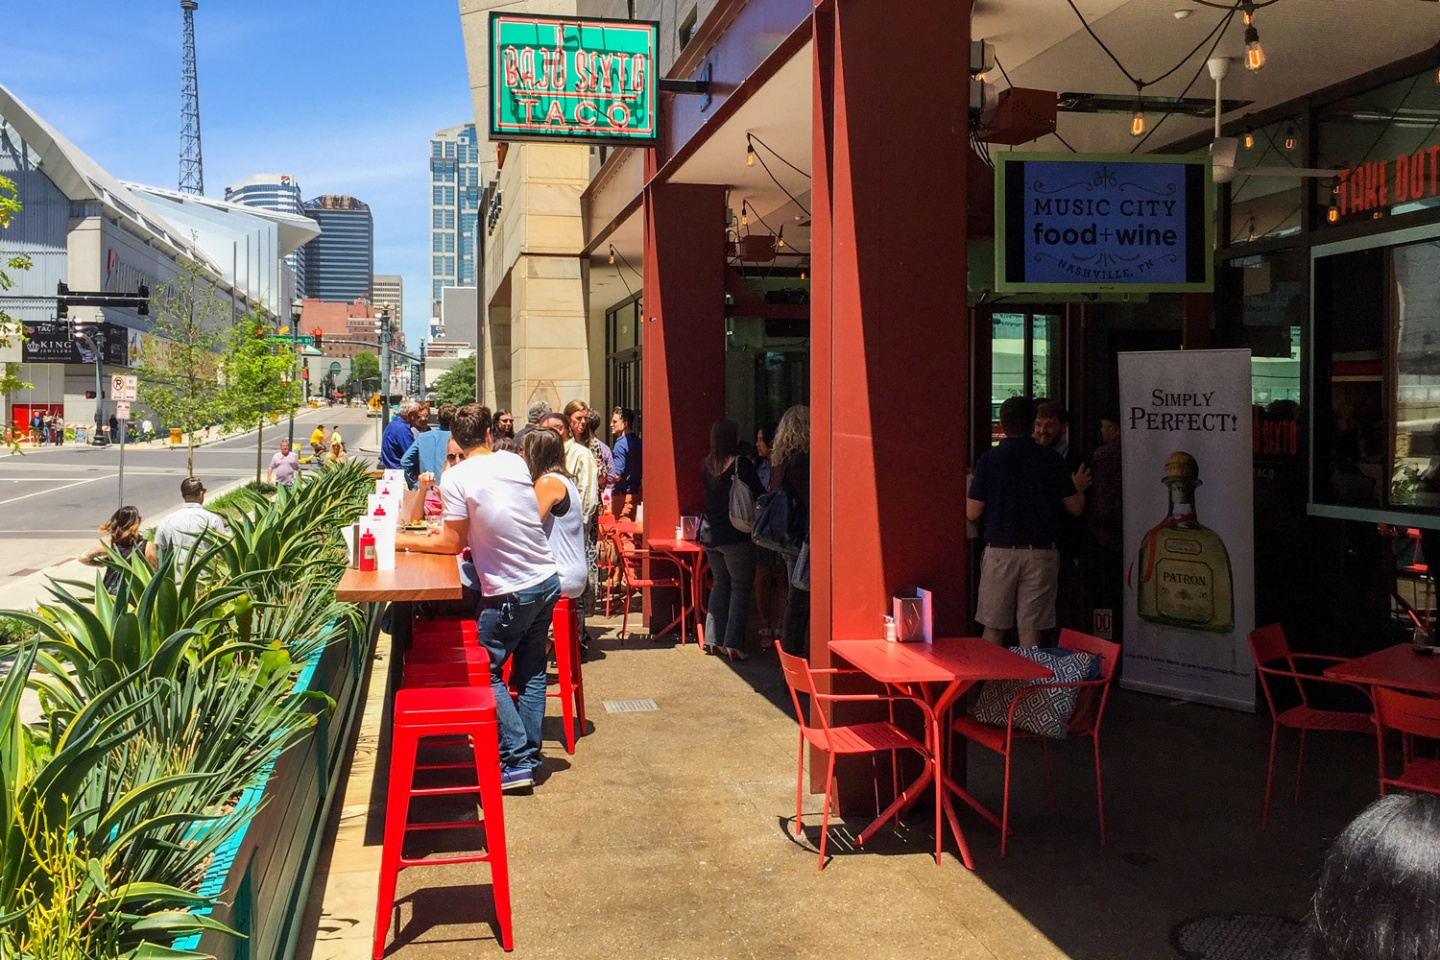 This Sobro Area Venture From Celebrity Chef Jonathan Waxman Is A Casual Taqueria With Limited Menu Of Mexican Cuisine Including Tacos Flautas